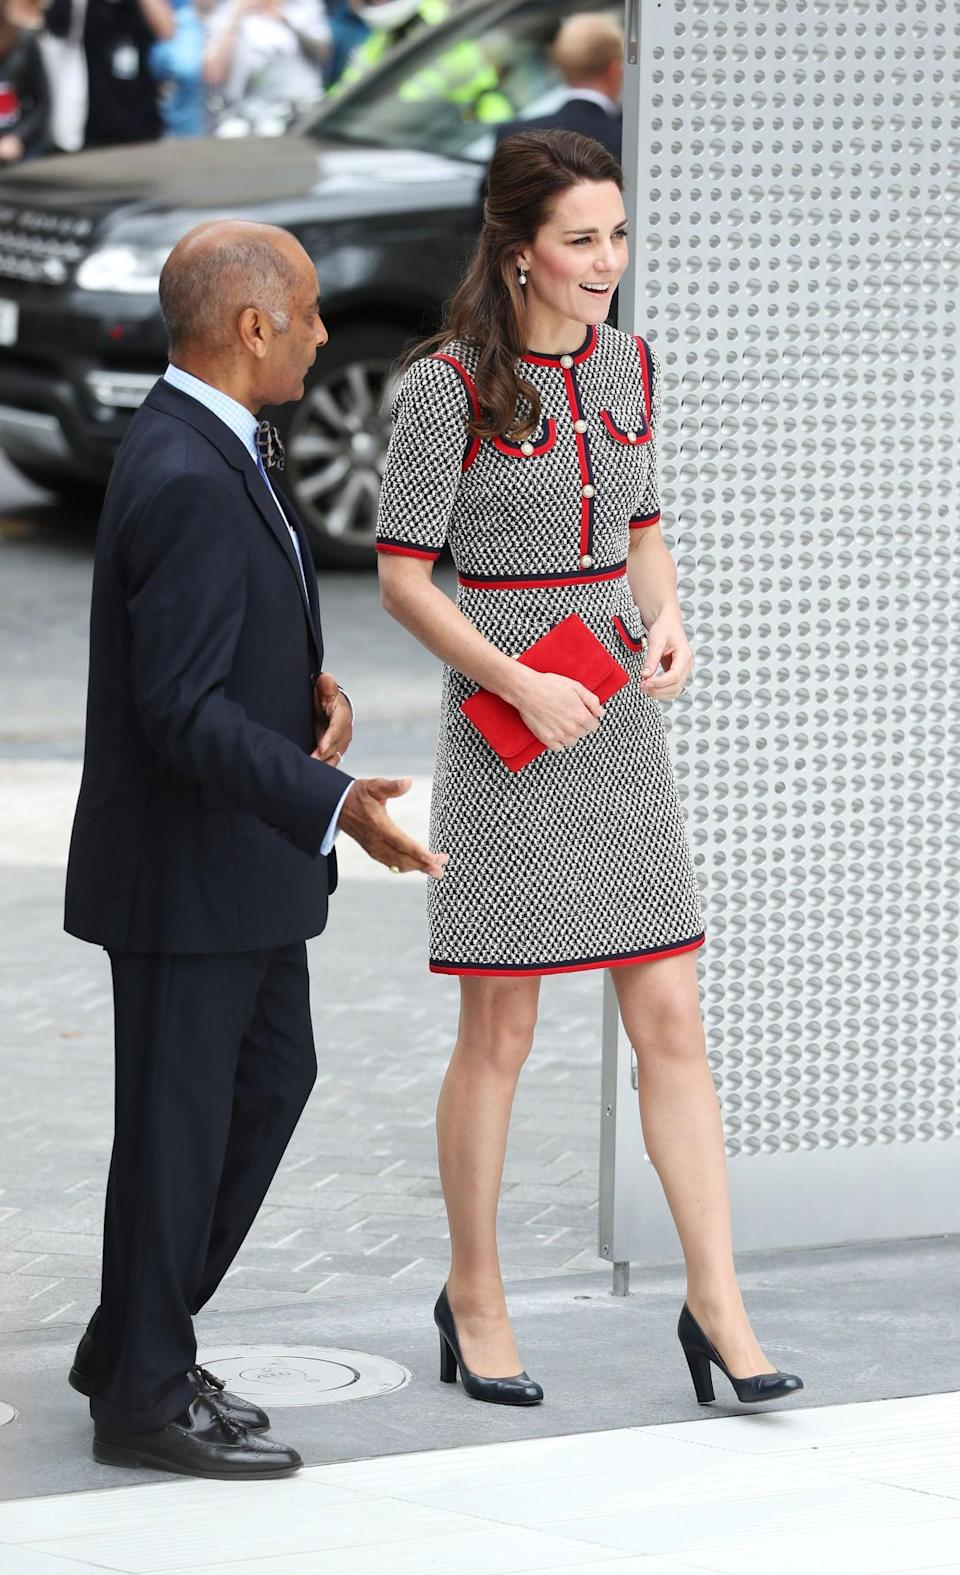 <p>Kate ditched her usual skirt suits for an appearance at London's V&A museum. Instead, she wore a monochrome tweed dress by Gucci; the first time the Duchess has ever been seen in anything by the Italian brand.<br><i>[Photo: PA]</i> </p>